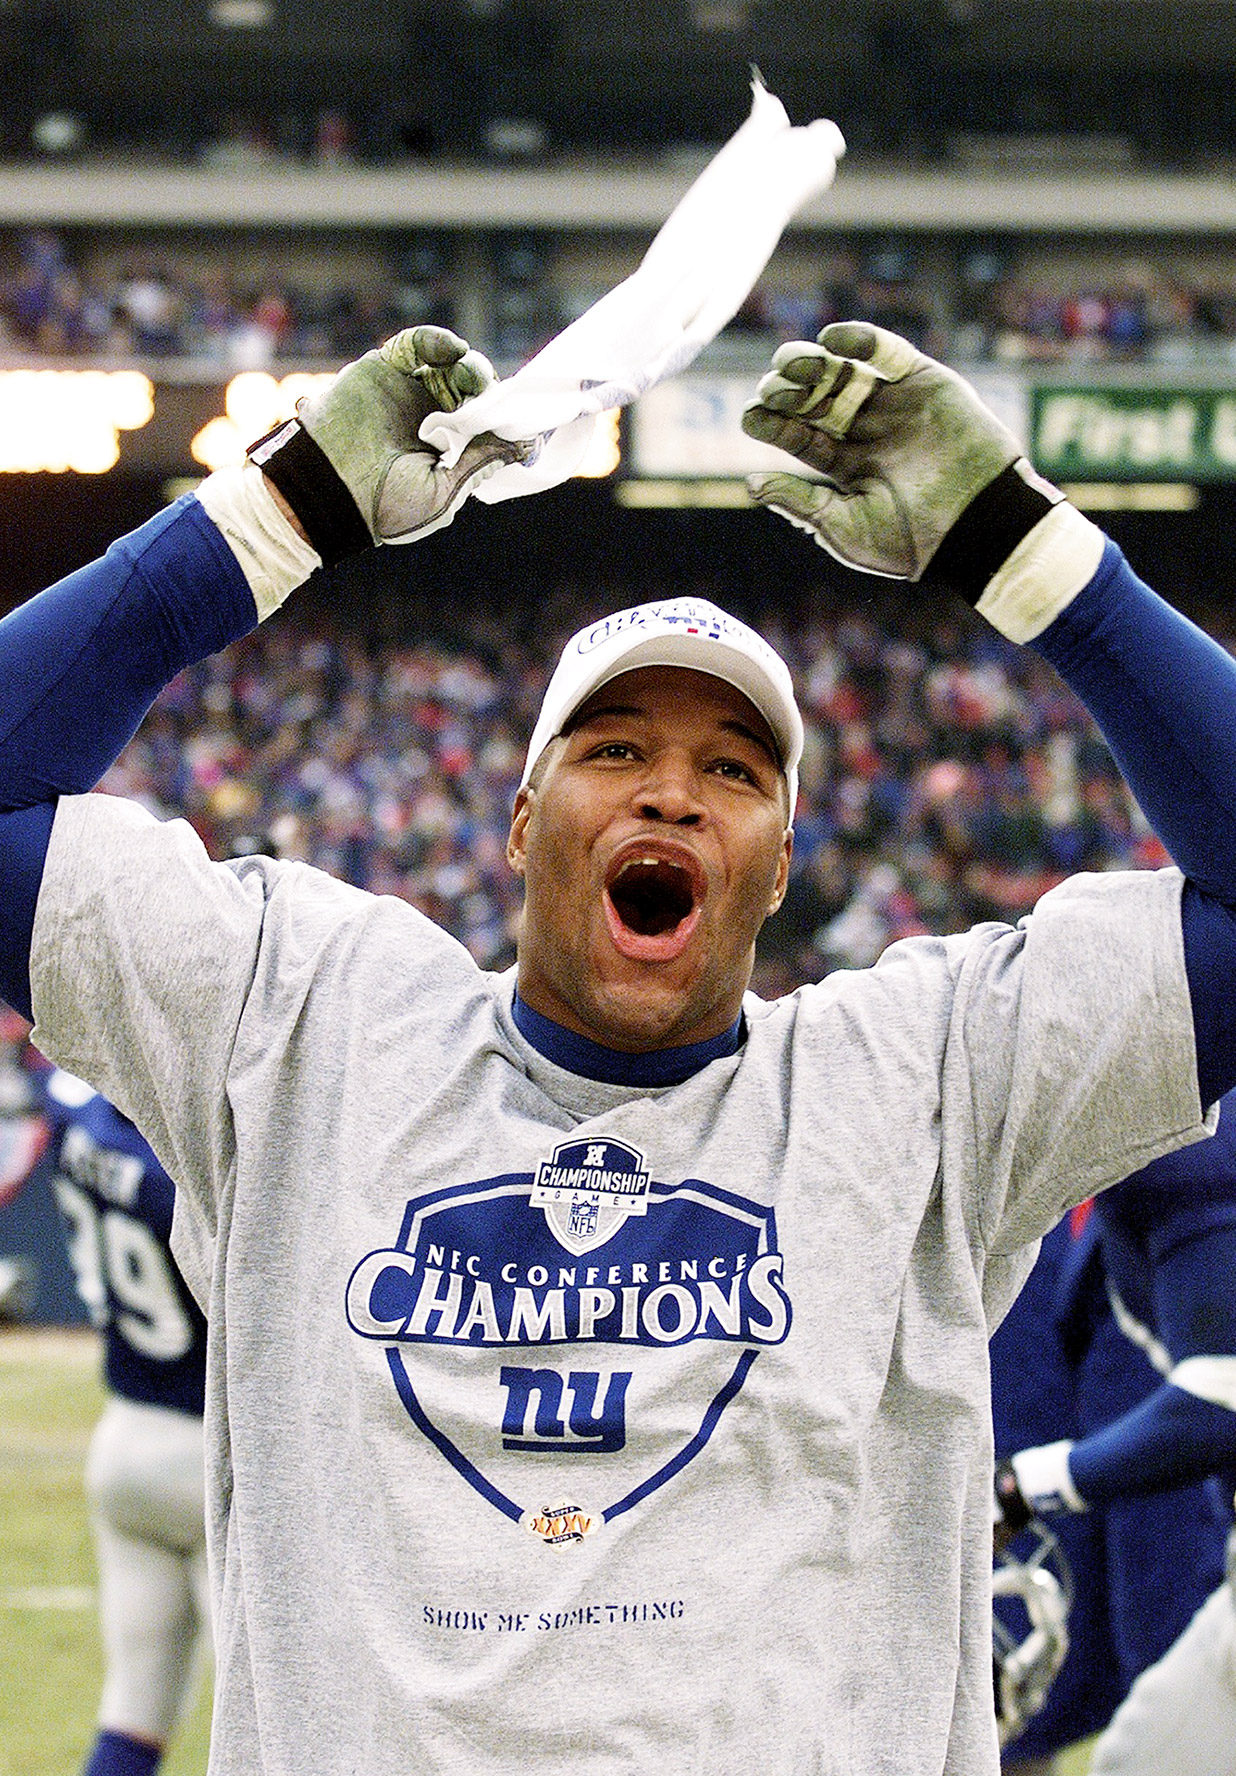 Michael Strahan and the Giants rolled over Minnesota in the 2000 NFC Championship Game, but fell in Super Bowl XXXV to the Ravens.